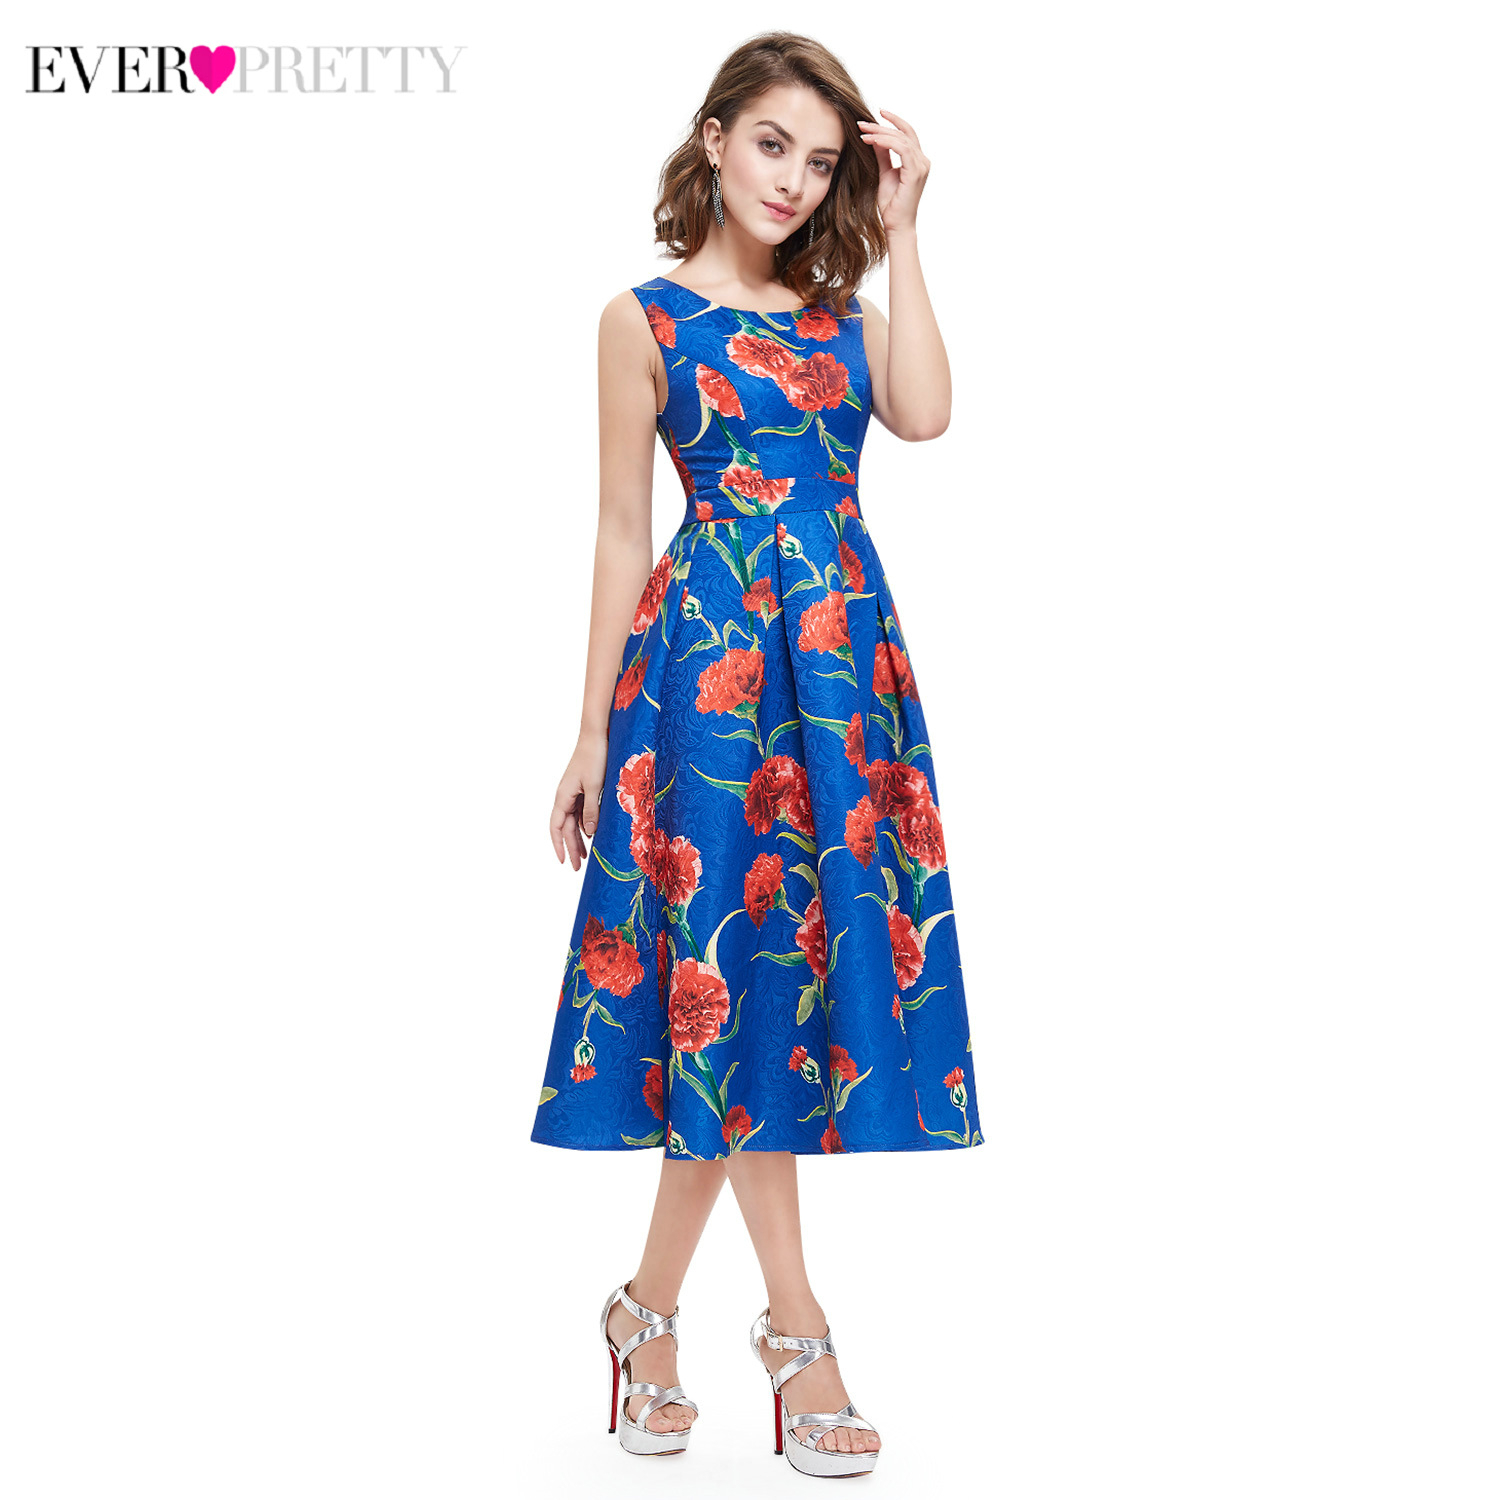 2020 Homecoming Dresses Ever Pretty AS05443 Summer A-line Satin Vestidos Coctel Floral Printed Sleeveless Cheap Short Party Gown